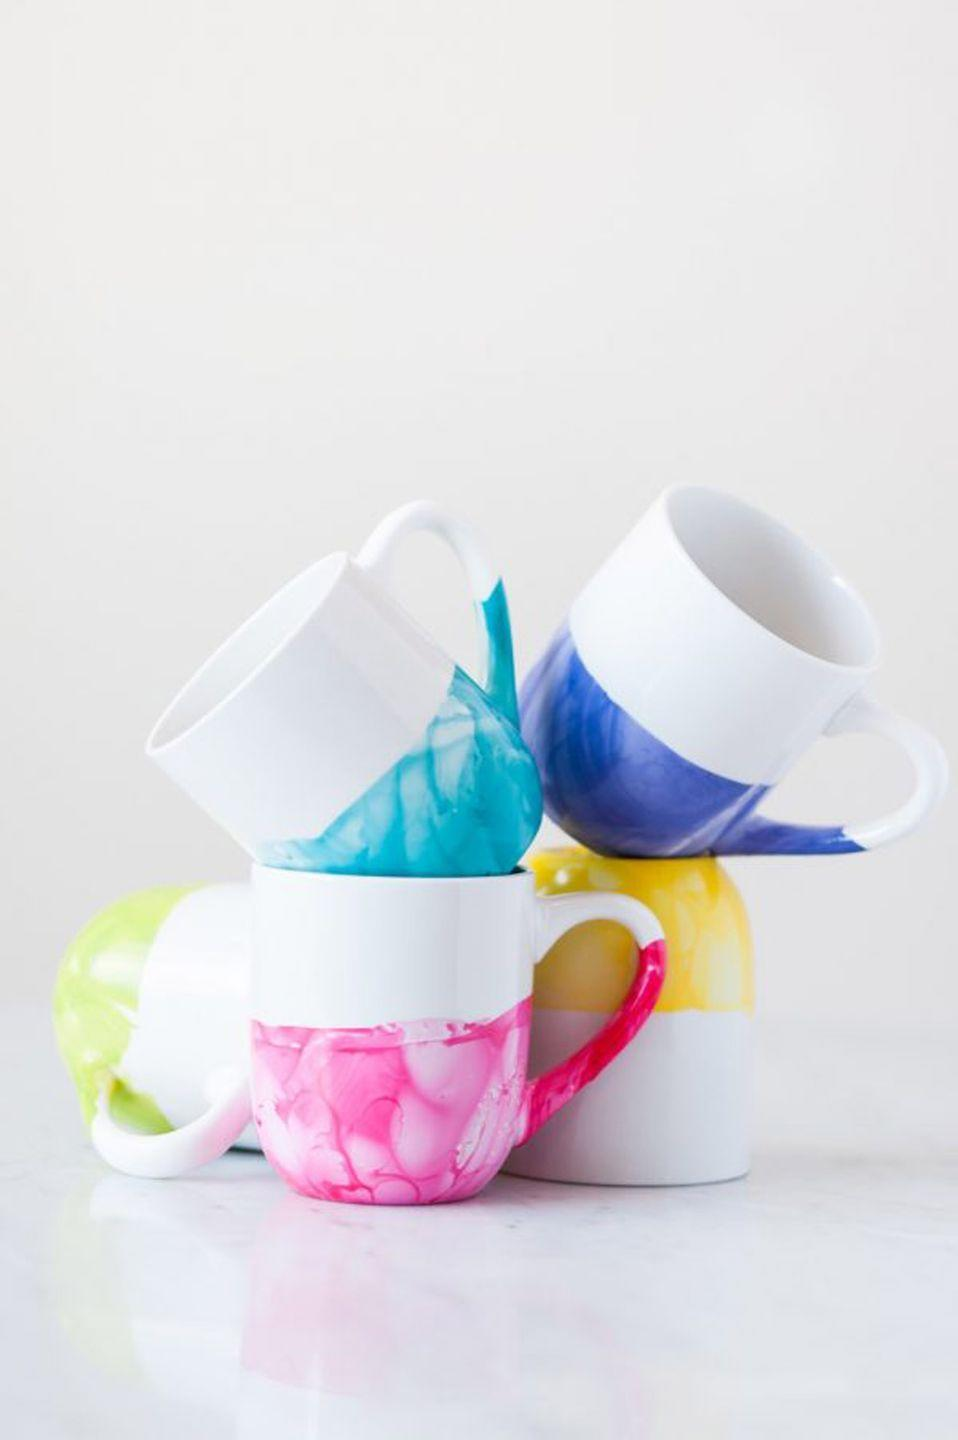 "<p>Let kids make a little bit of a mess with these coffee mugs. As beautiful as the marbling looks, it's actually incredibly easy to create.</p><p><strong>Get the tutorial at <a href=""https://thesweetestoccasion.com/2015/08/diy-marble-dipped-mugs/"" rel=""nofollow noopener"" target=""_blank"" data-ylk=""slk:The Sweetest Occasion"" class=""link rapid-noclick-resp"">The Sweetest Occasion</a>.</strong><br></p>"